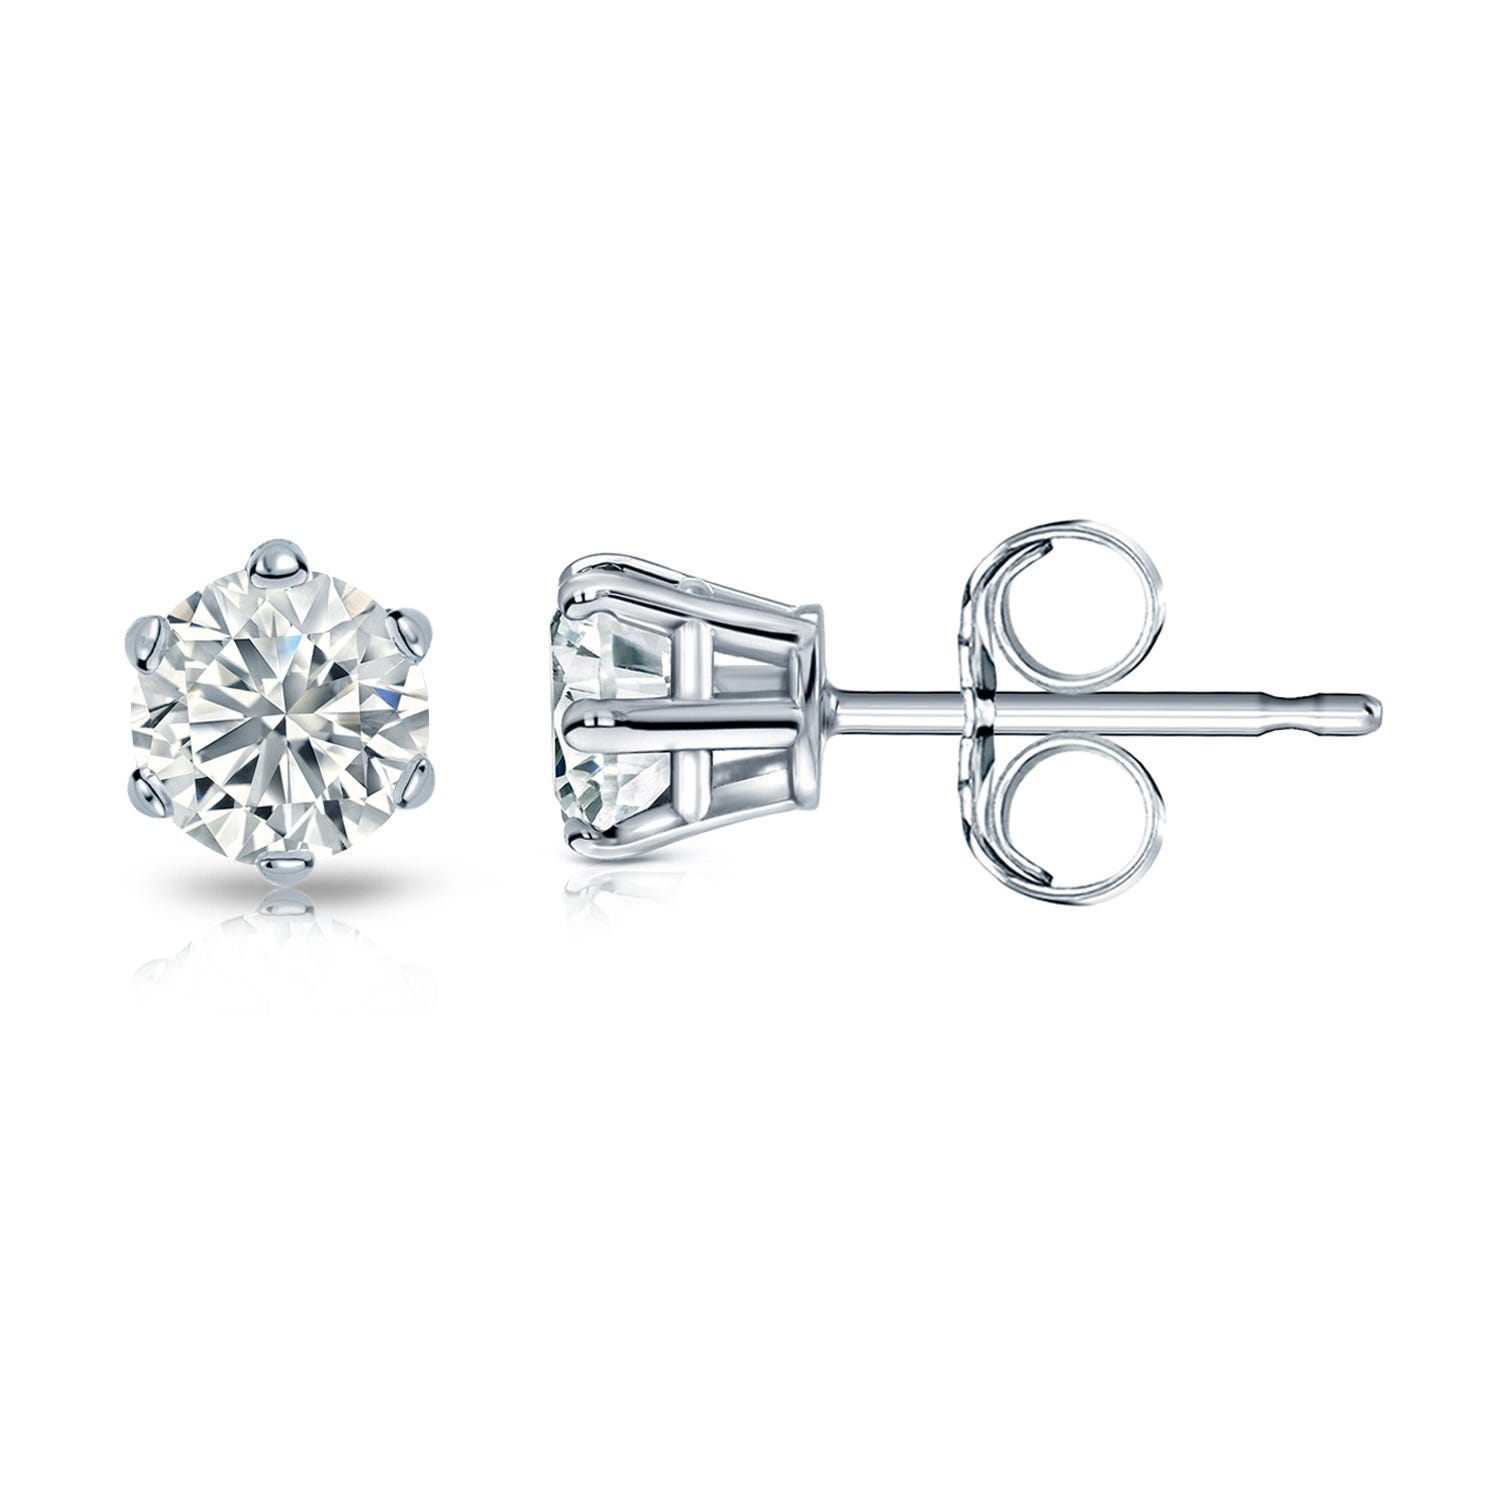 Round Diamond 1/2ctw. (IJ-I2) Solitaire Stud 6-Prong Earrings in 10K White Gold